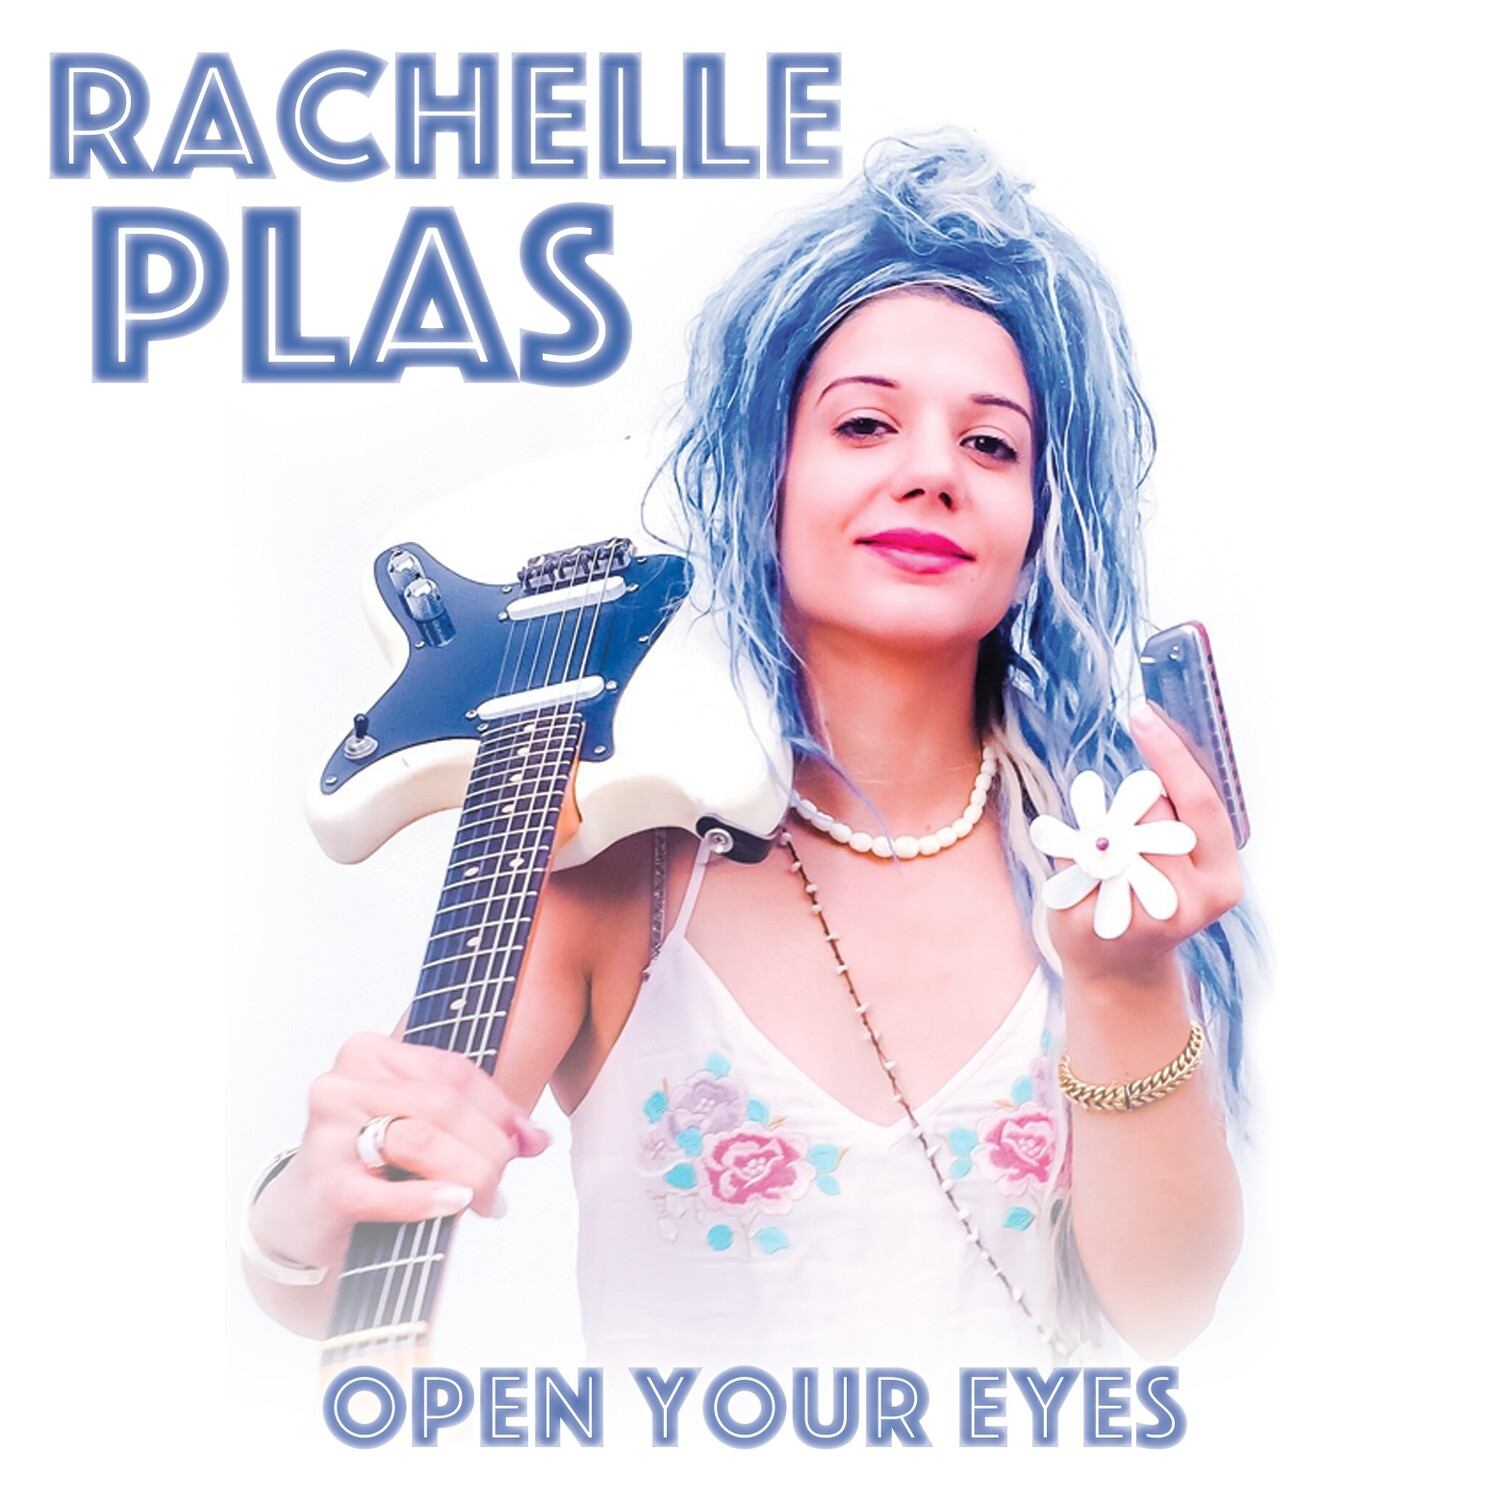 CHANSON - Open Your Eyes (Rachelle PLAS, Single) (Rachelle Plas/Philippe Hervouët).mp3